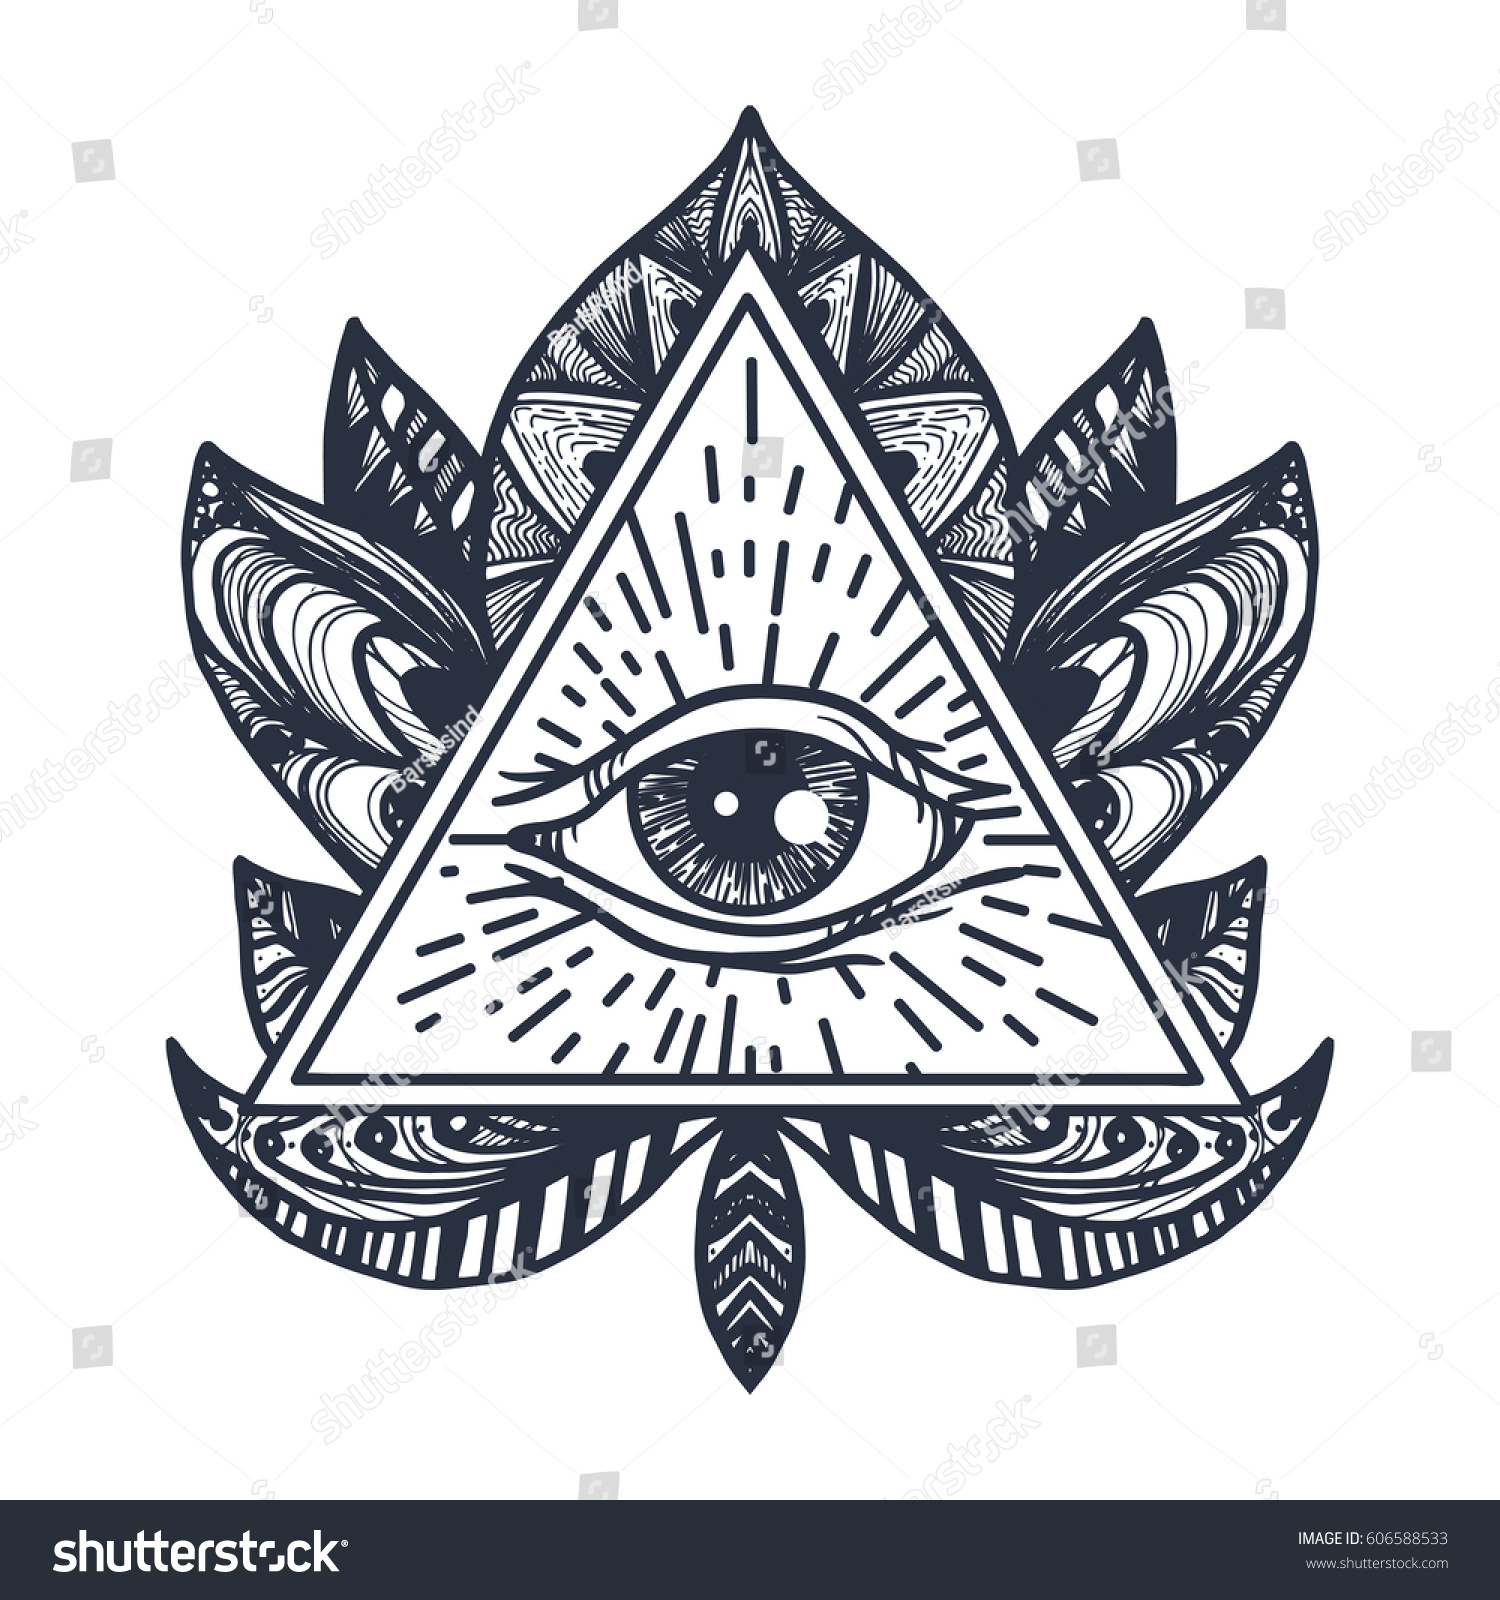 Royalty free vintage all seeing eye in mandala lotus 606588533 providence magic symbol for print tattoo coloring bookfabric t shirt cloth in boho style astrology occult esoteric insight sign with eye buycottarizona